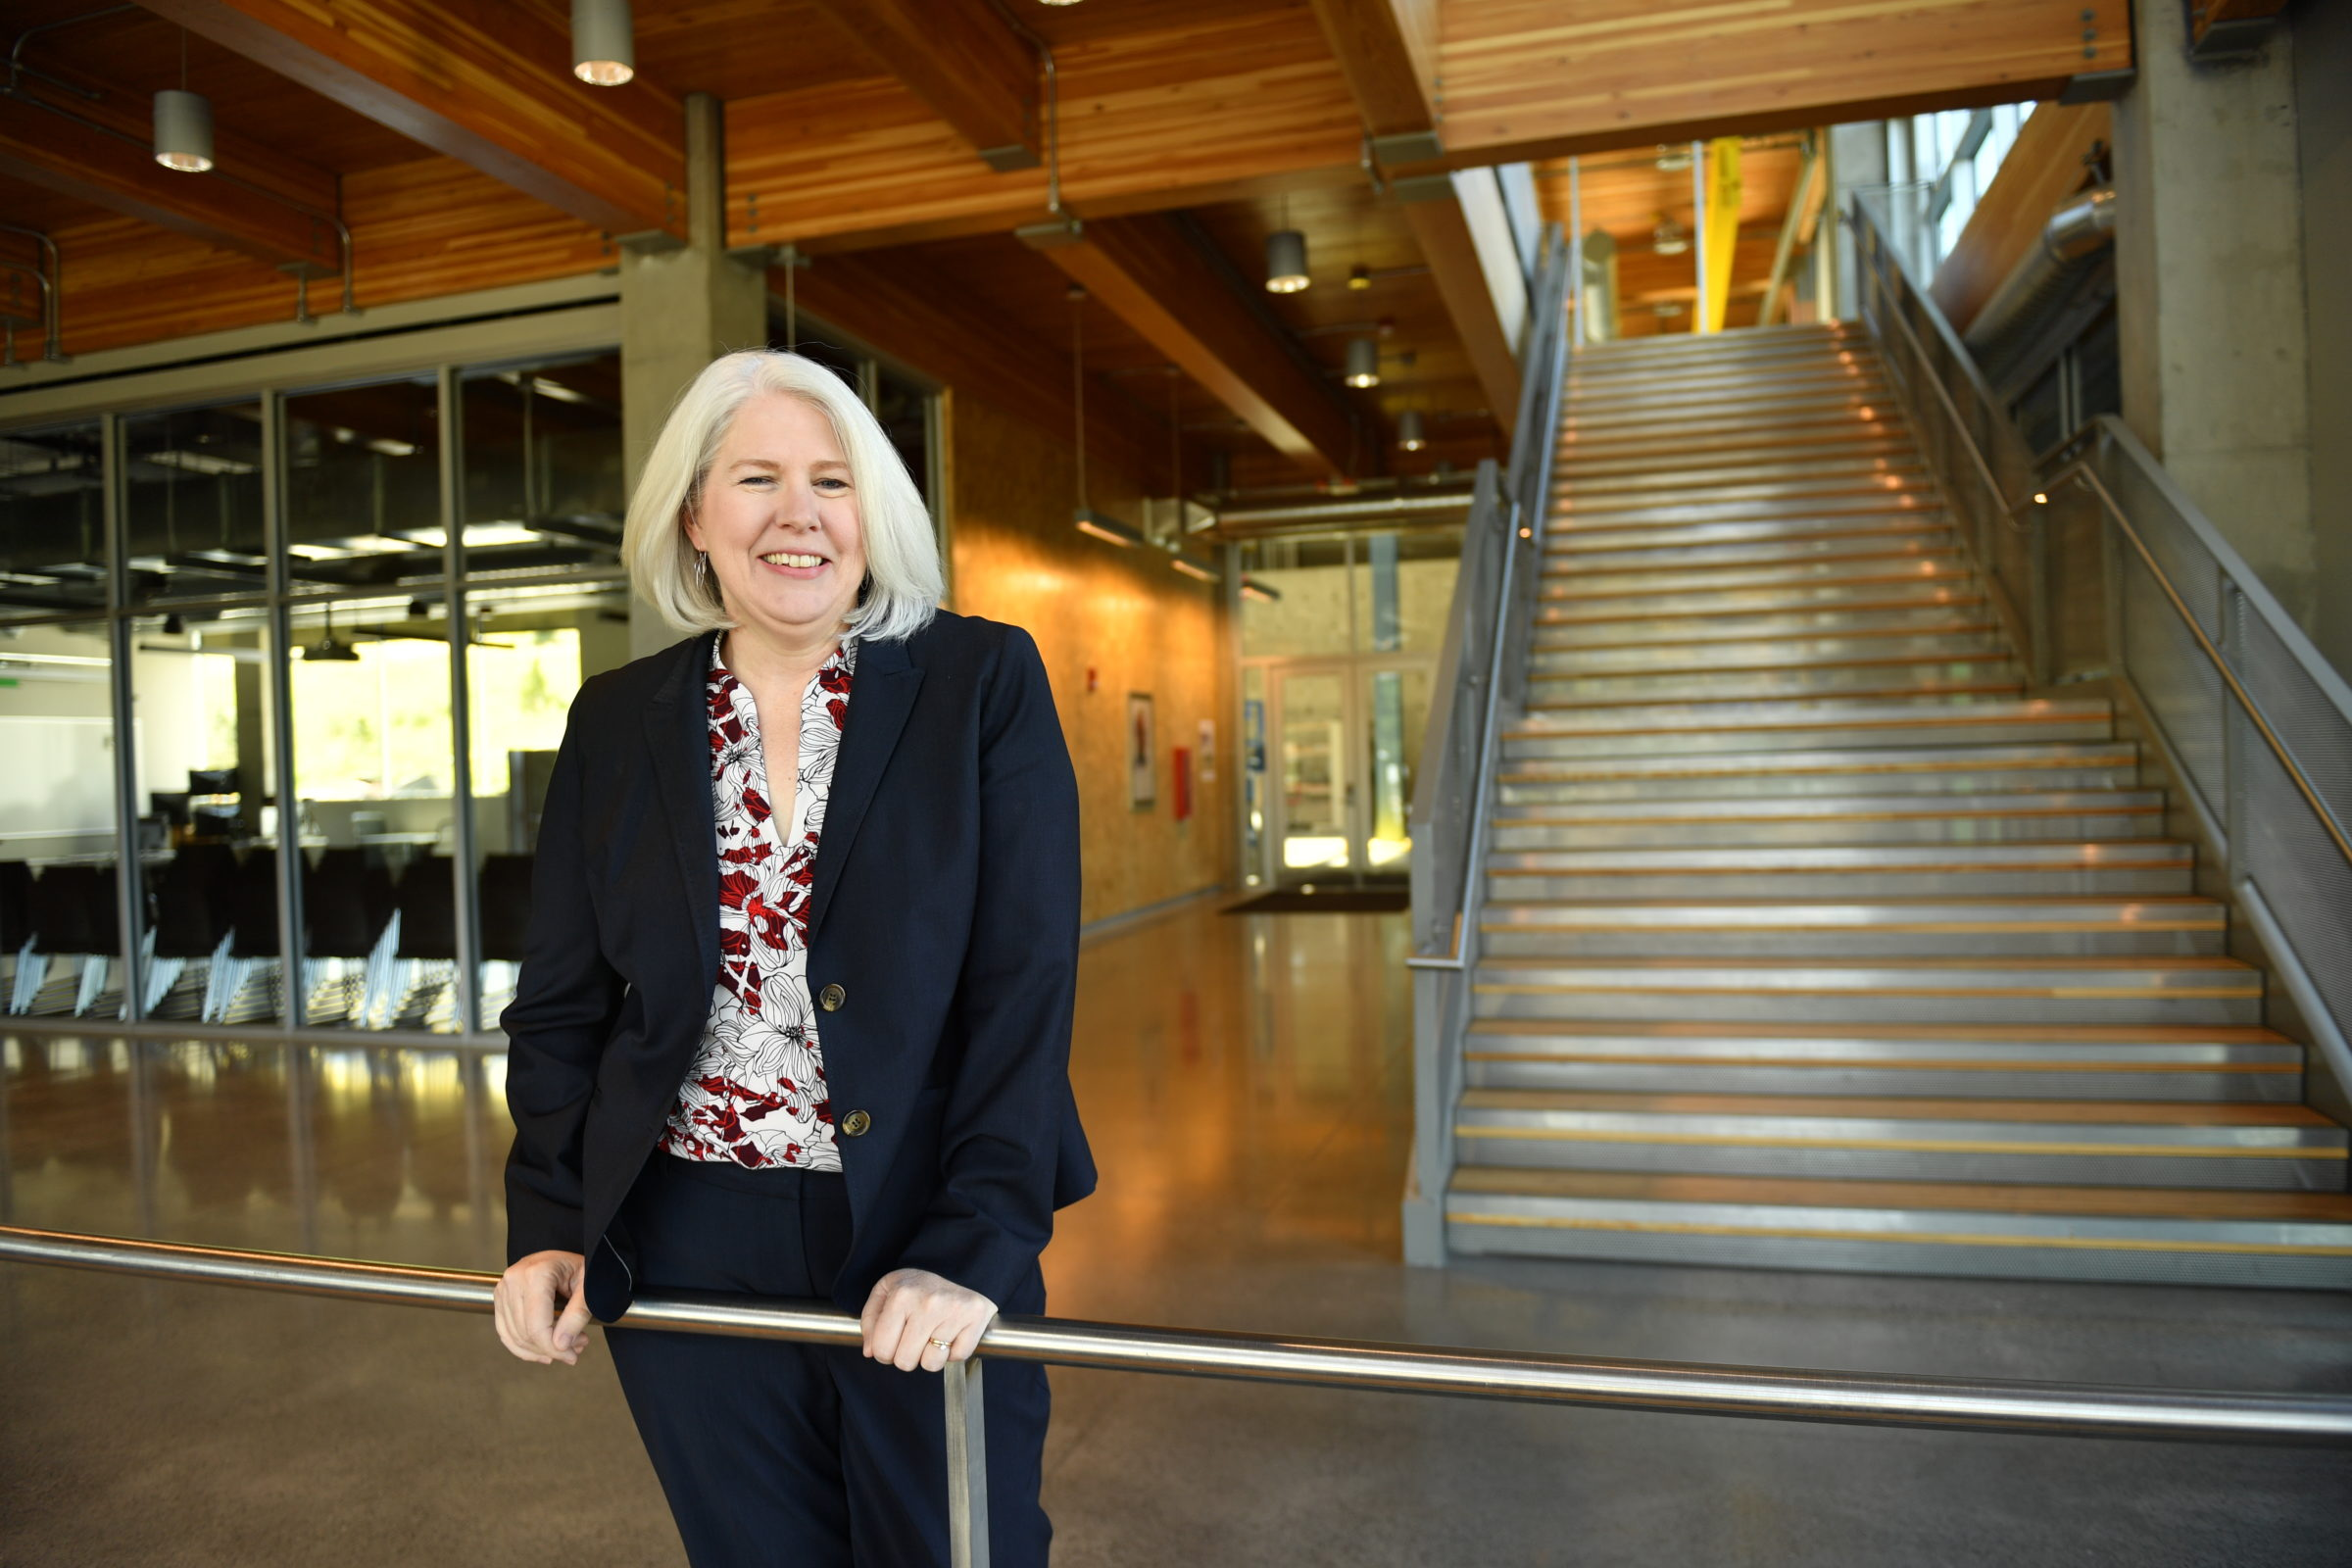 Dean Rezac standing in the lobby of the PACCAR Environmental Technology Building.